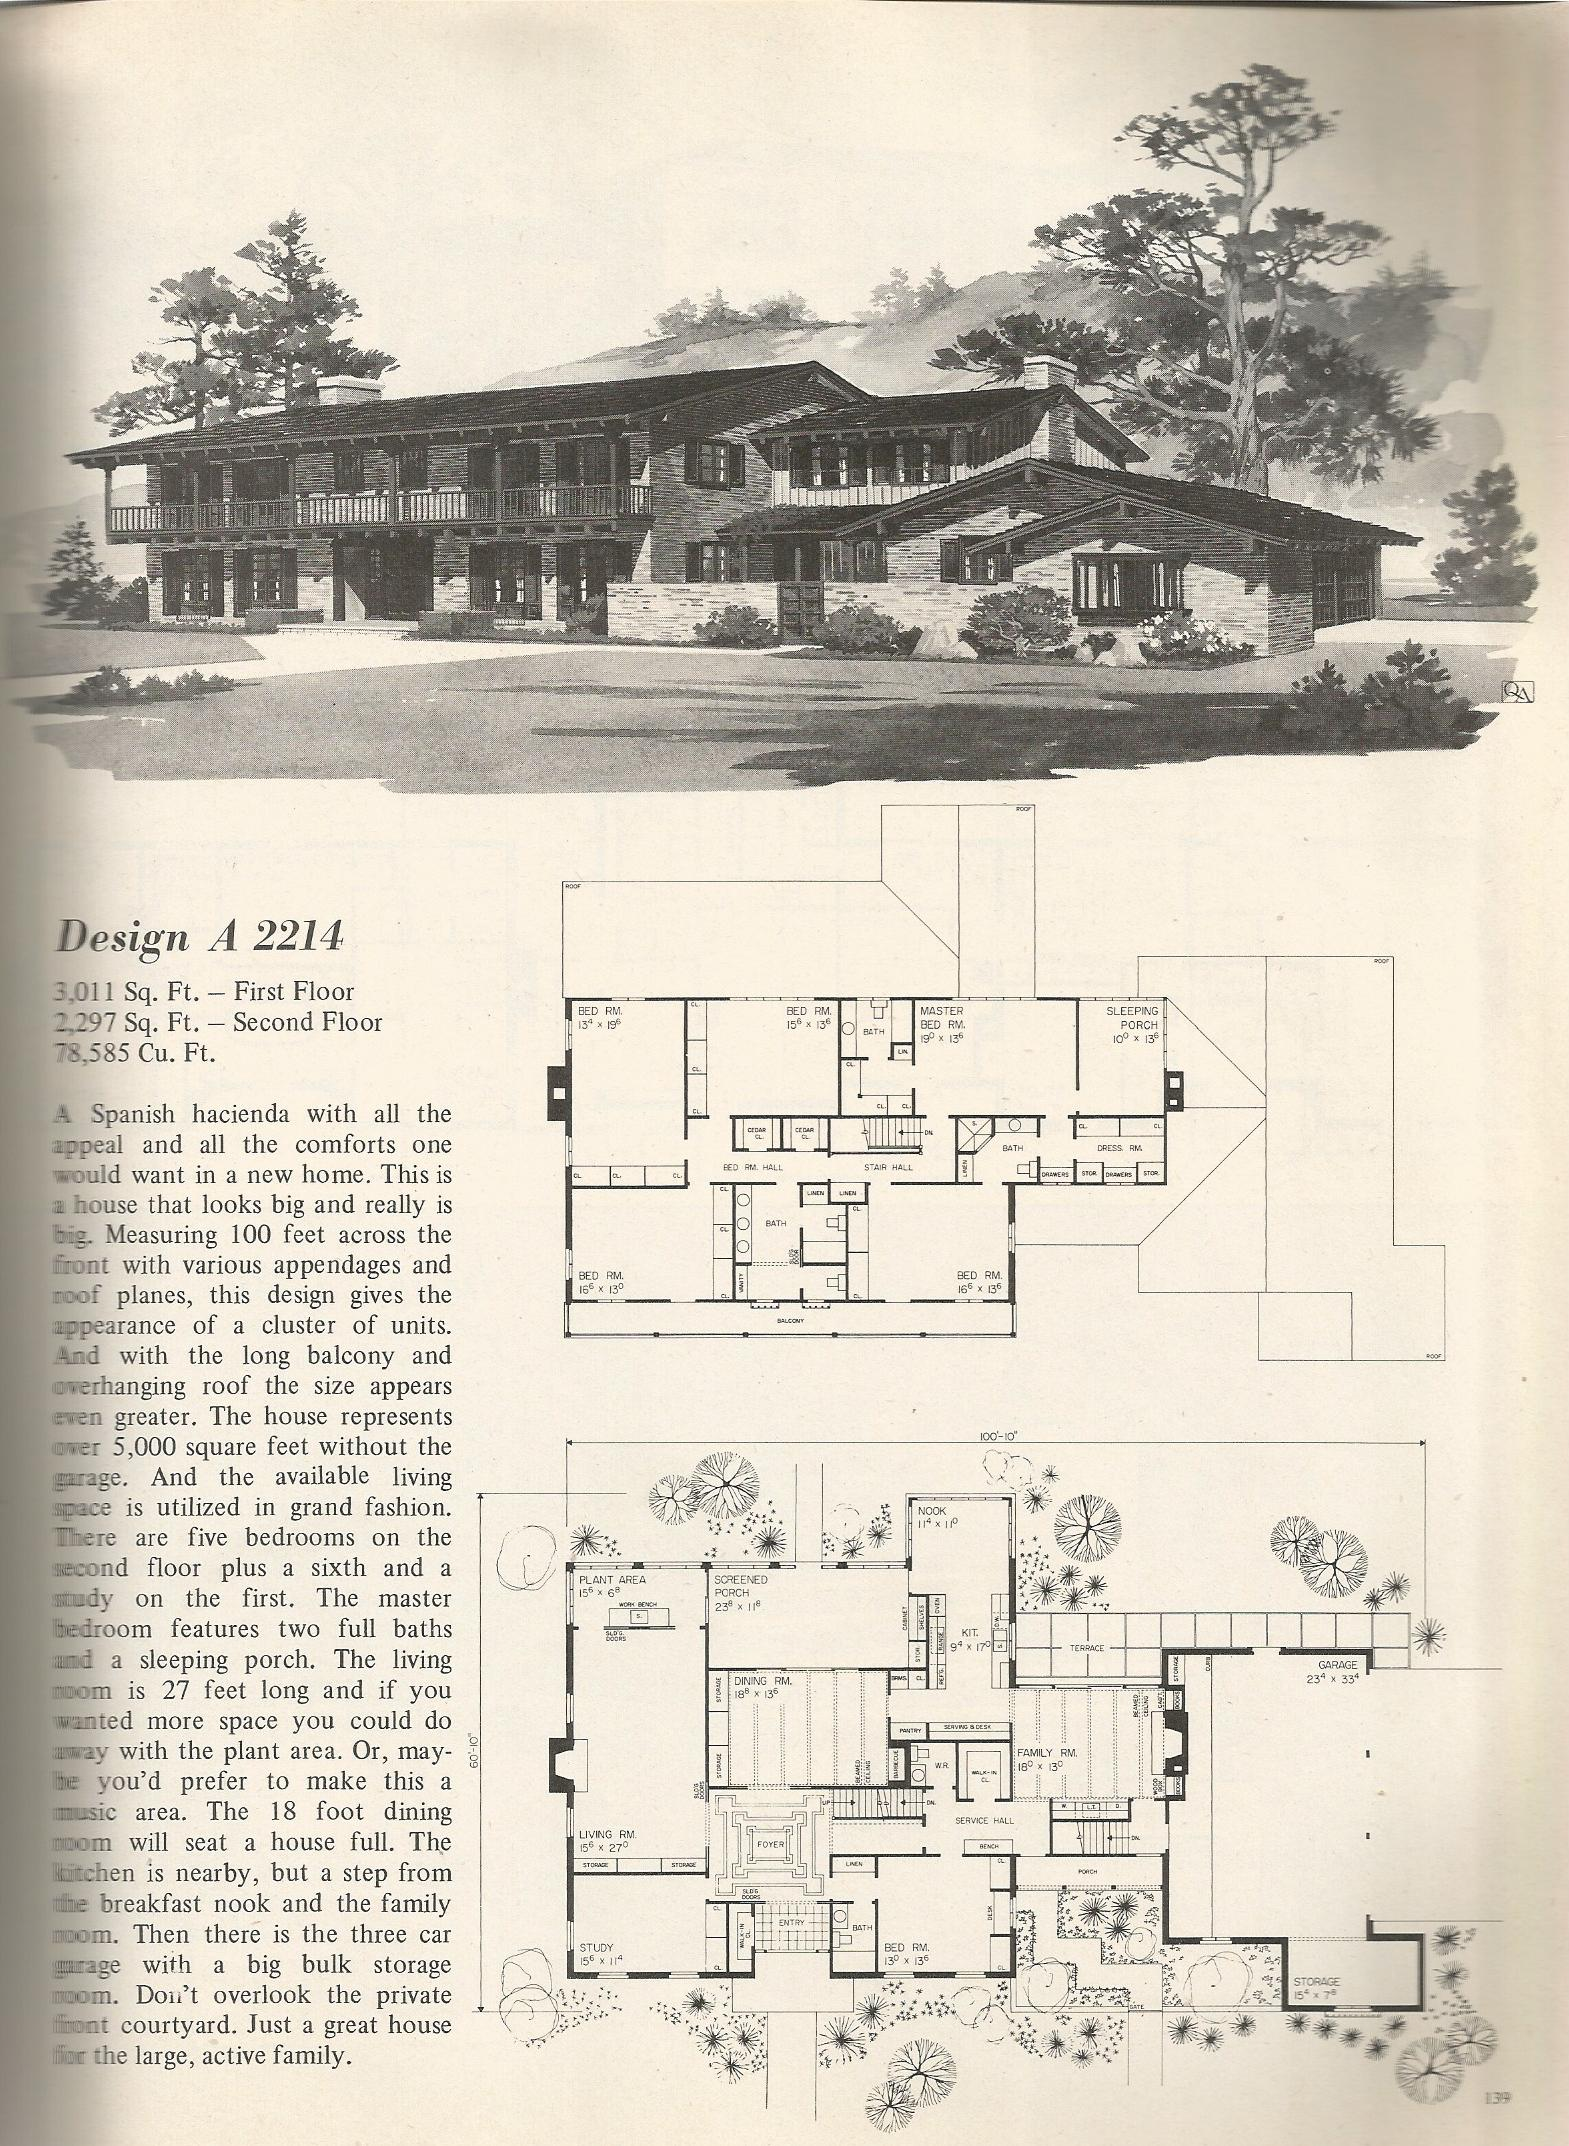 Vintage home plans old west 2214 antique alter ego Classic house plans